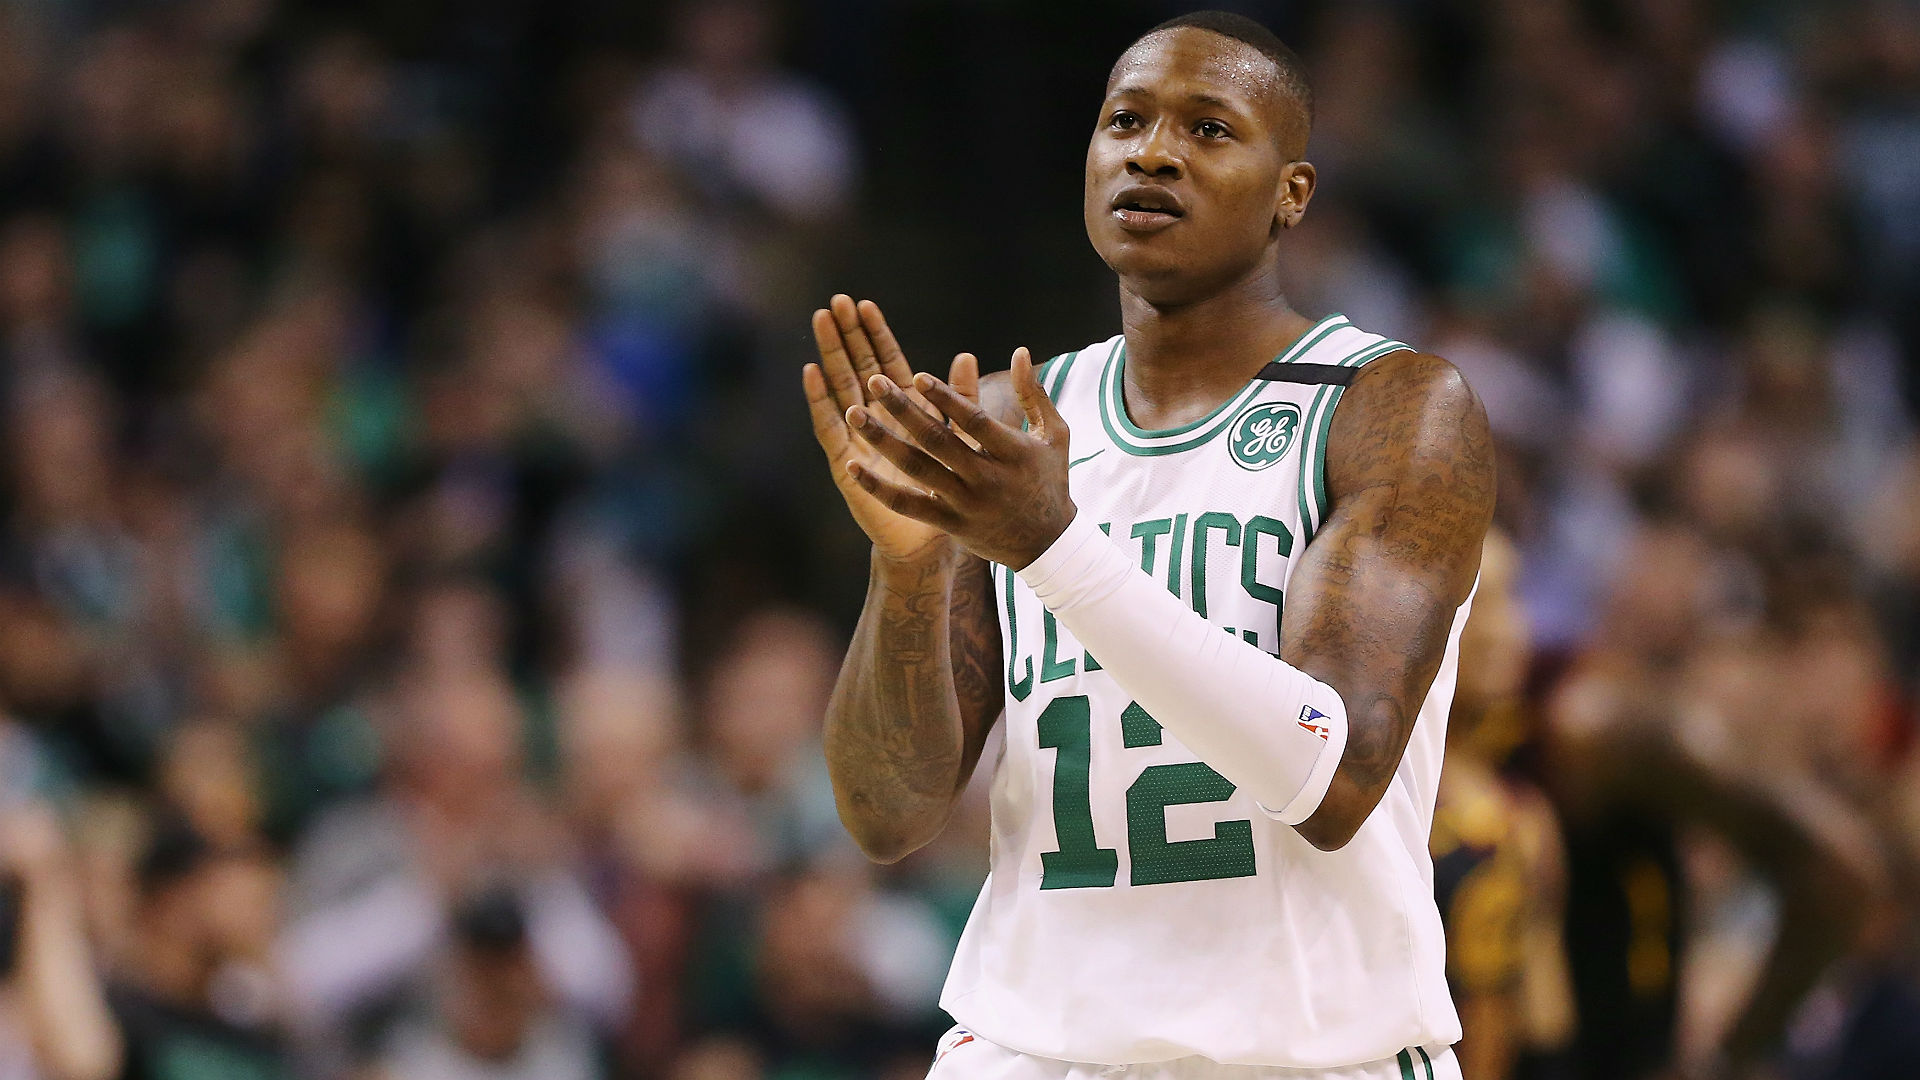 NBA free agency rumors: Hornets to acquire Terry Rozier in sign-and-trade